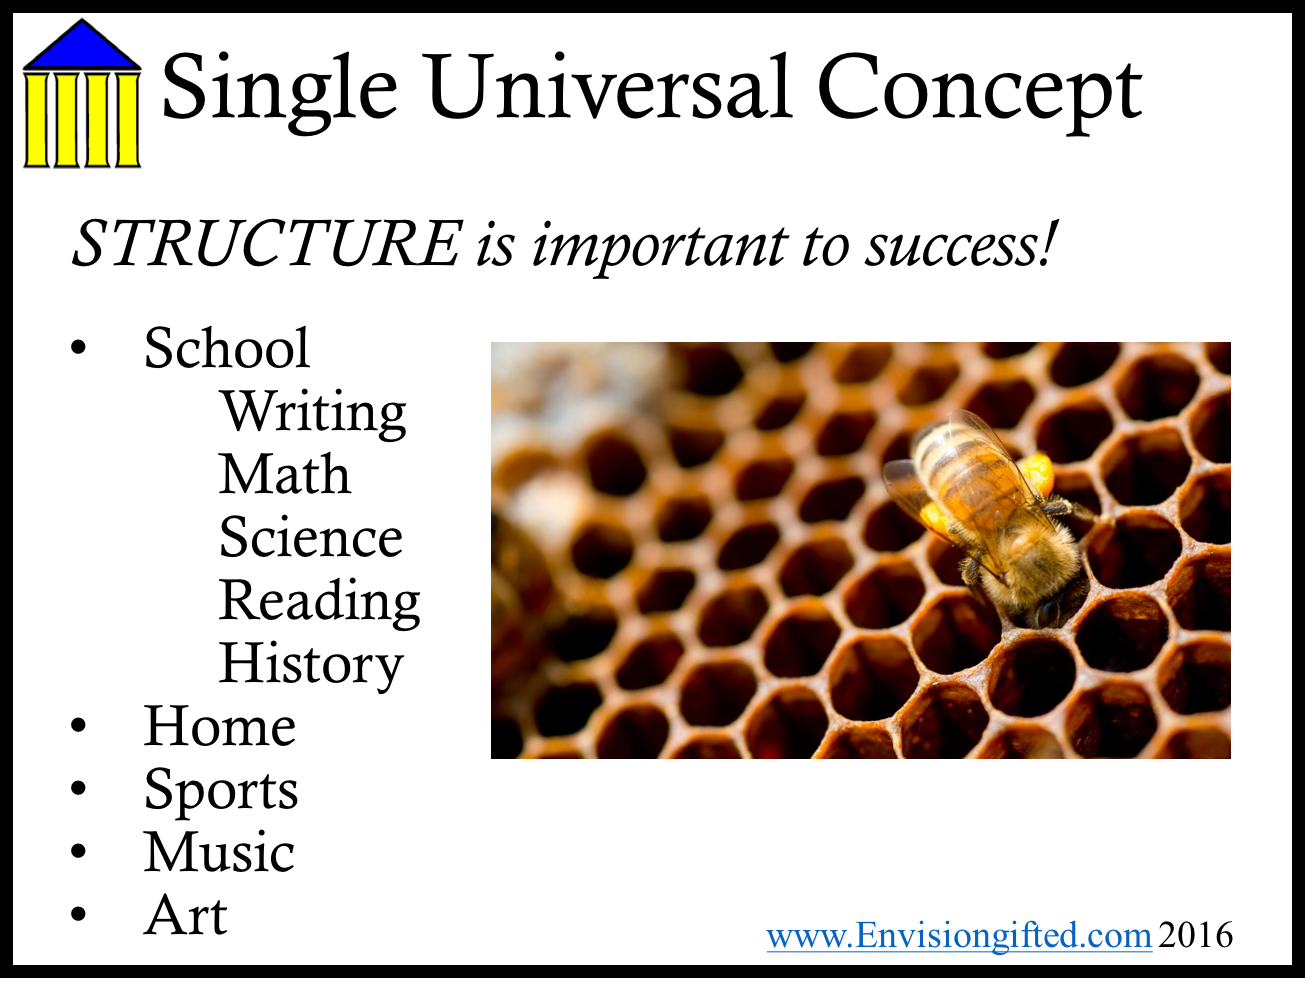 Envision Gifted. Universal Concept Structure